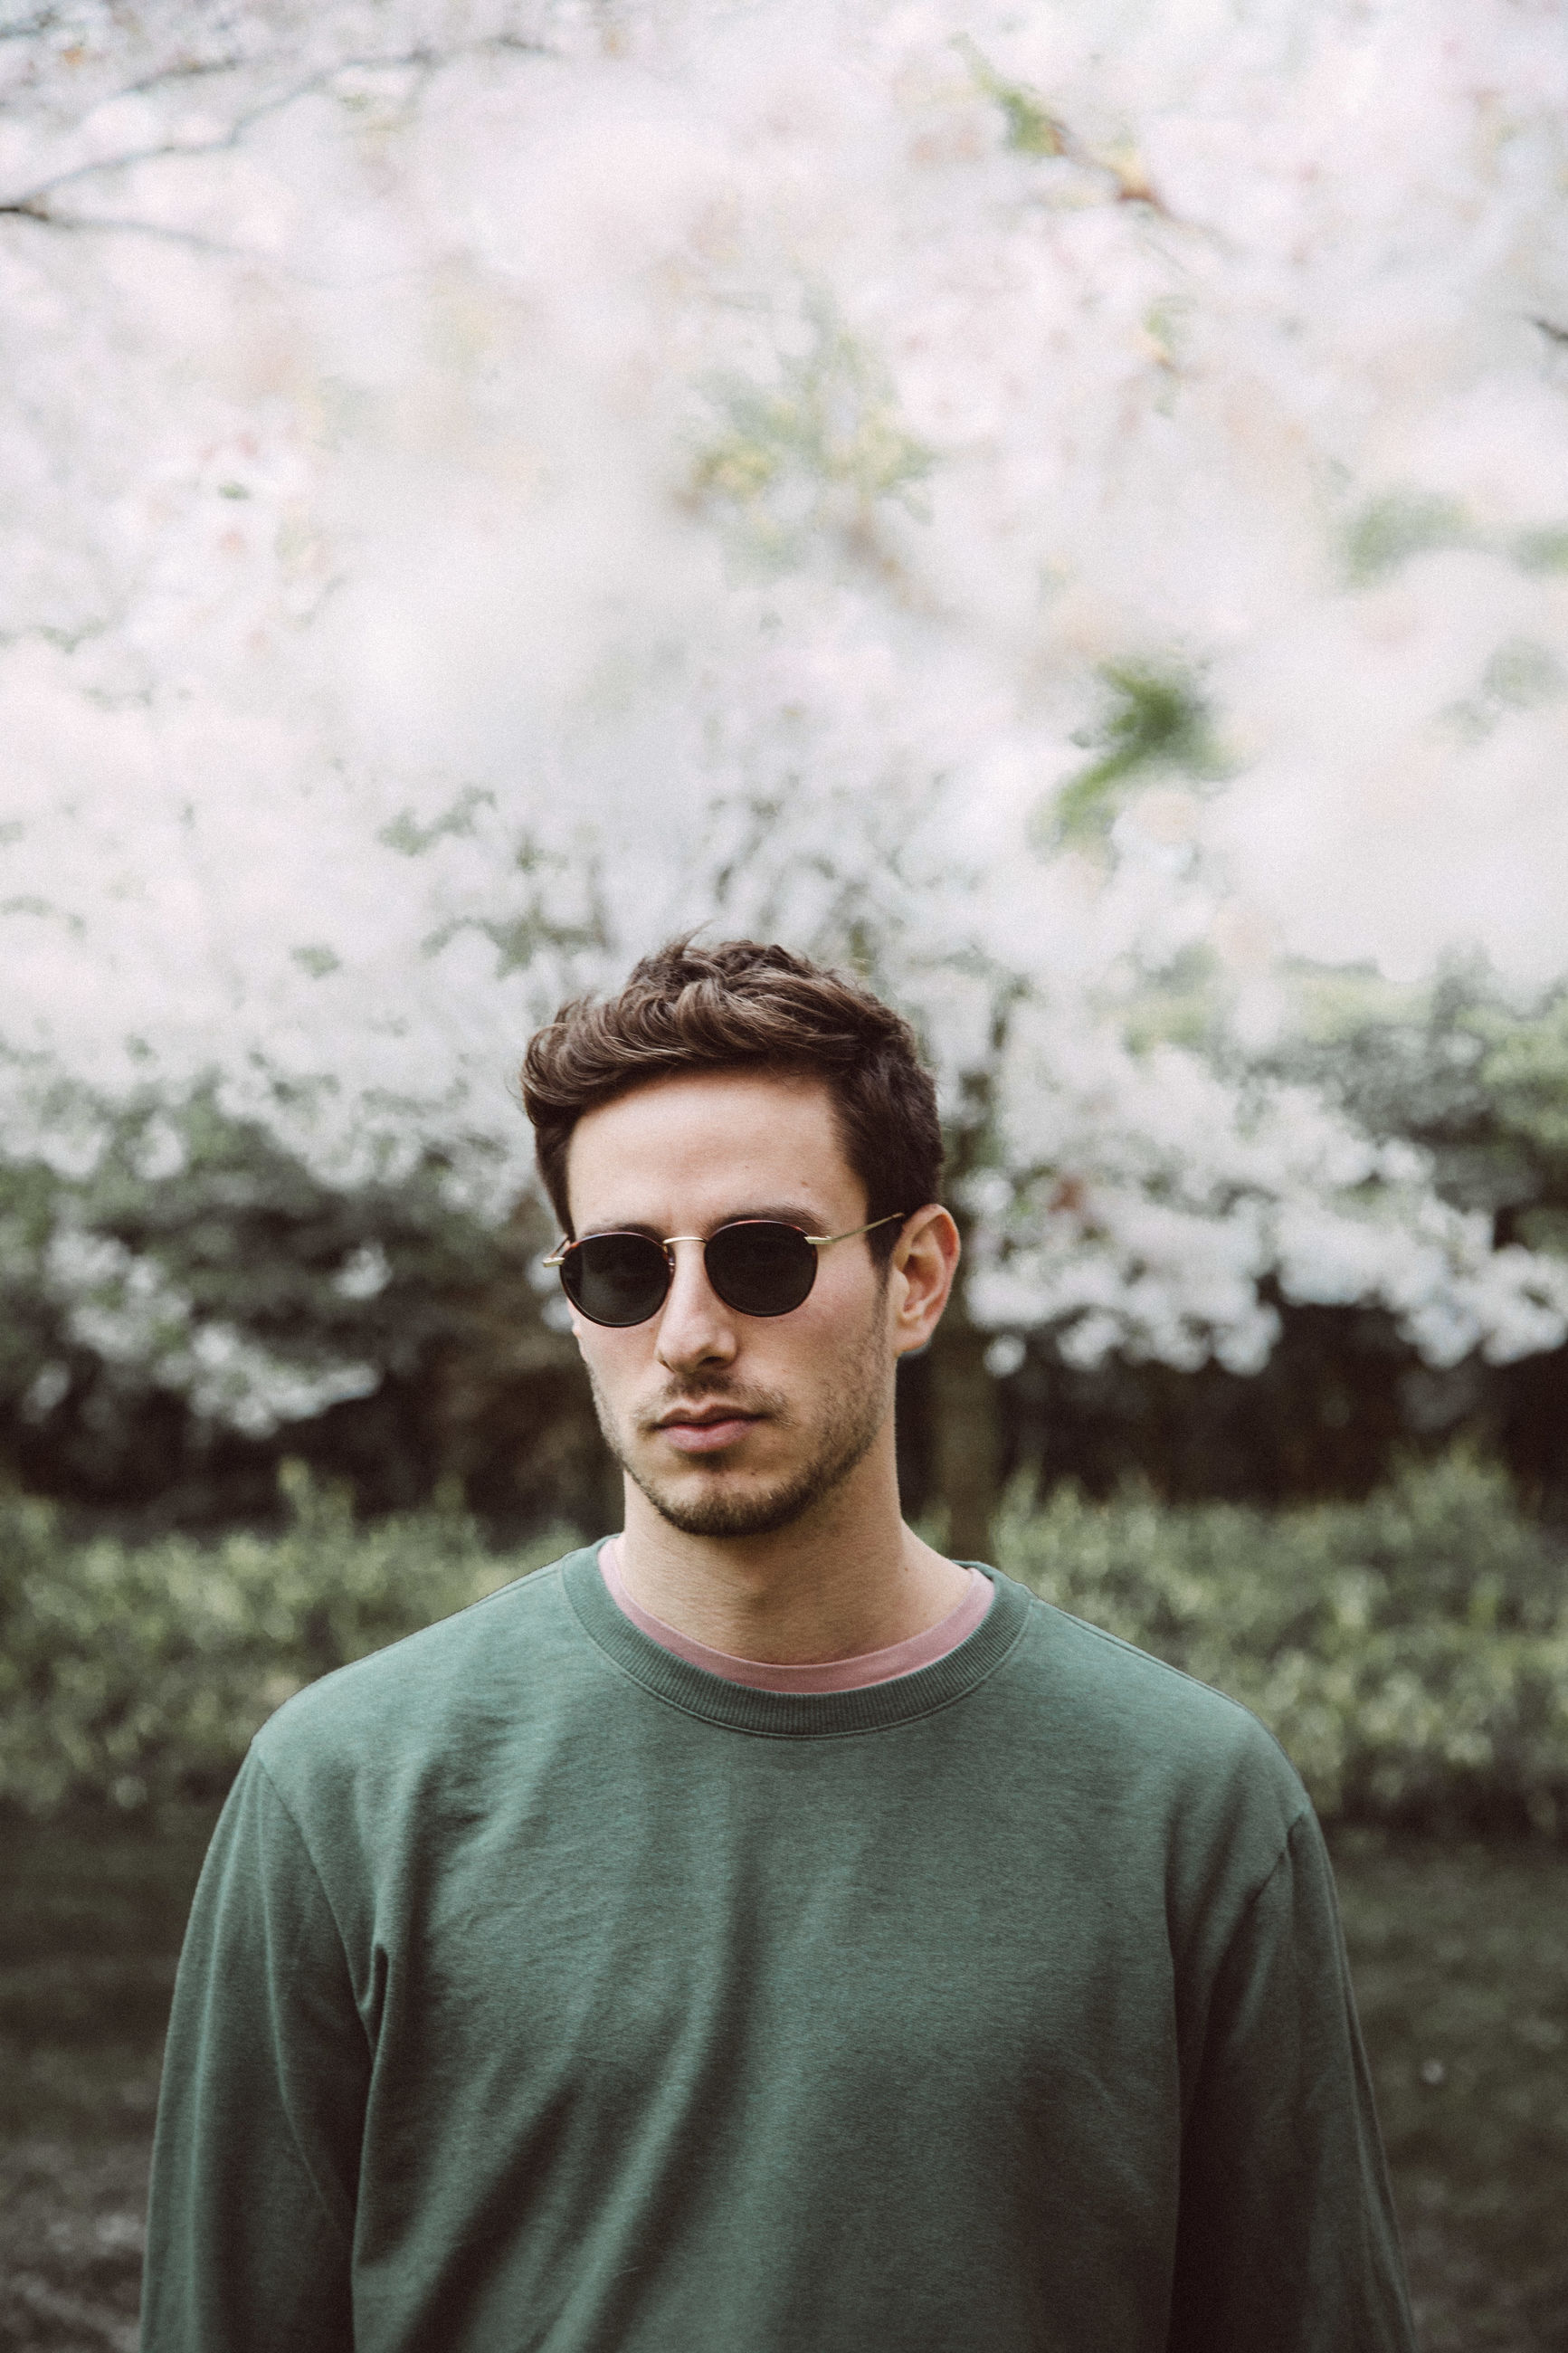 Portrait of young man wearing sunglasses standing in park